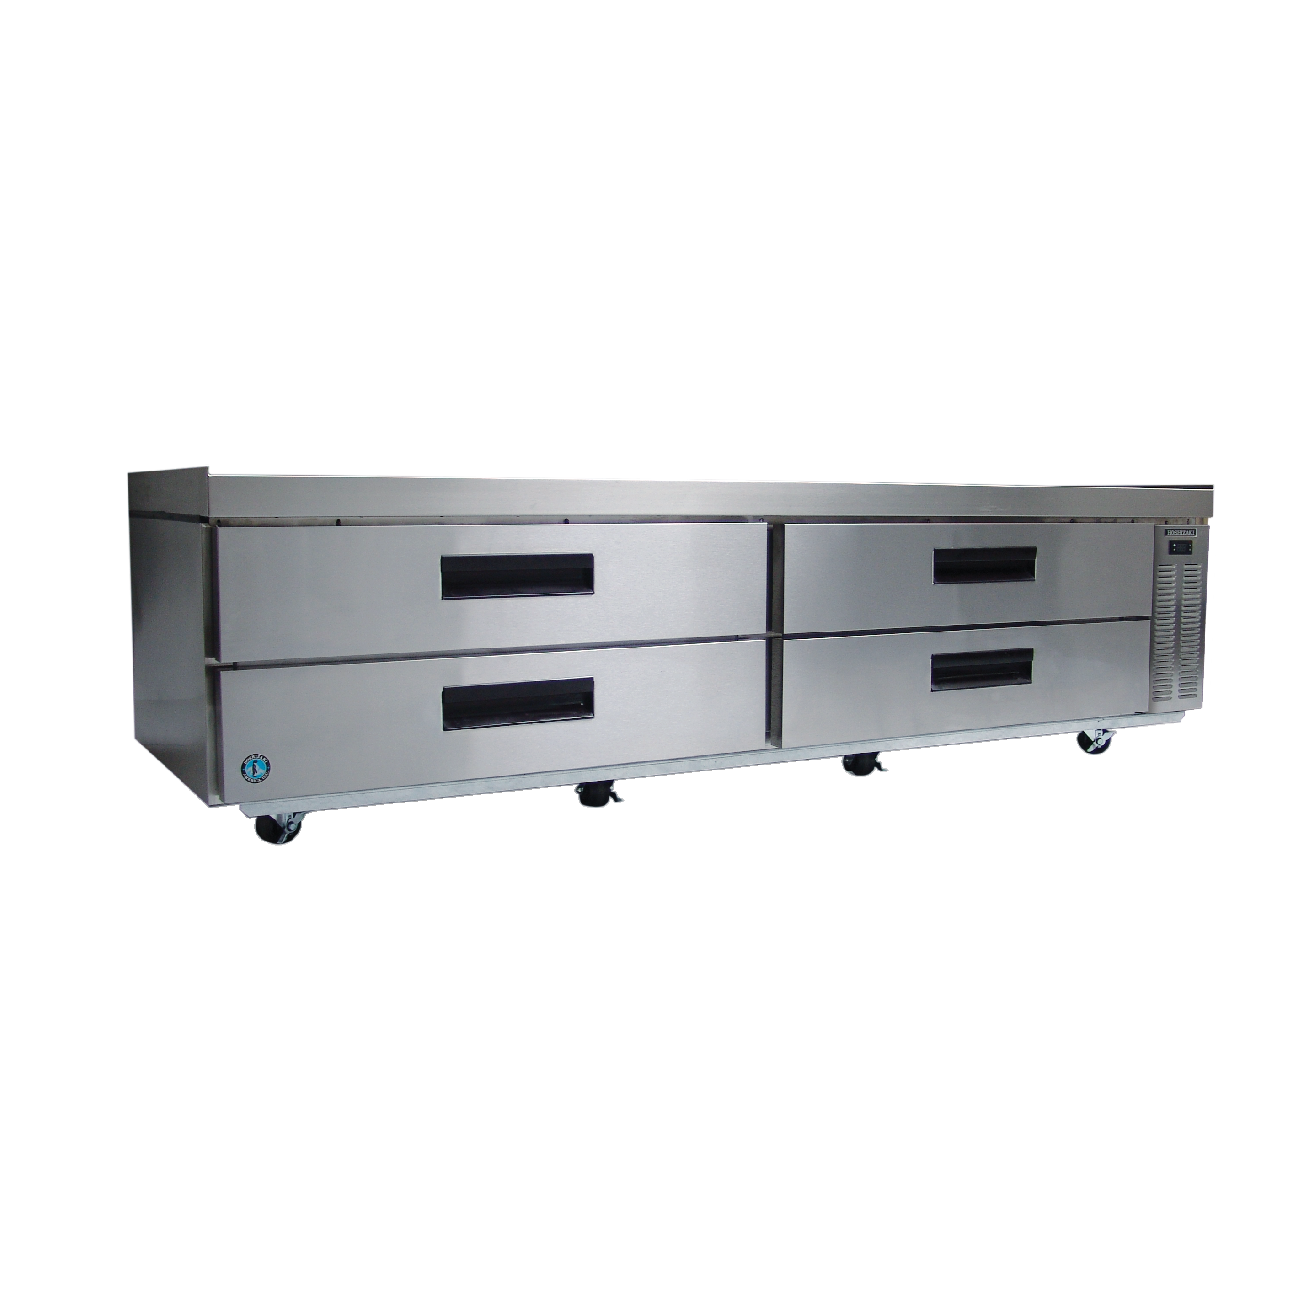 "superior-equipment-supply - Hoshizaki - Hoshizaki Stainless Steel 98"" Wide Equipment Stand With Refrigerator"